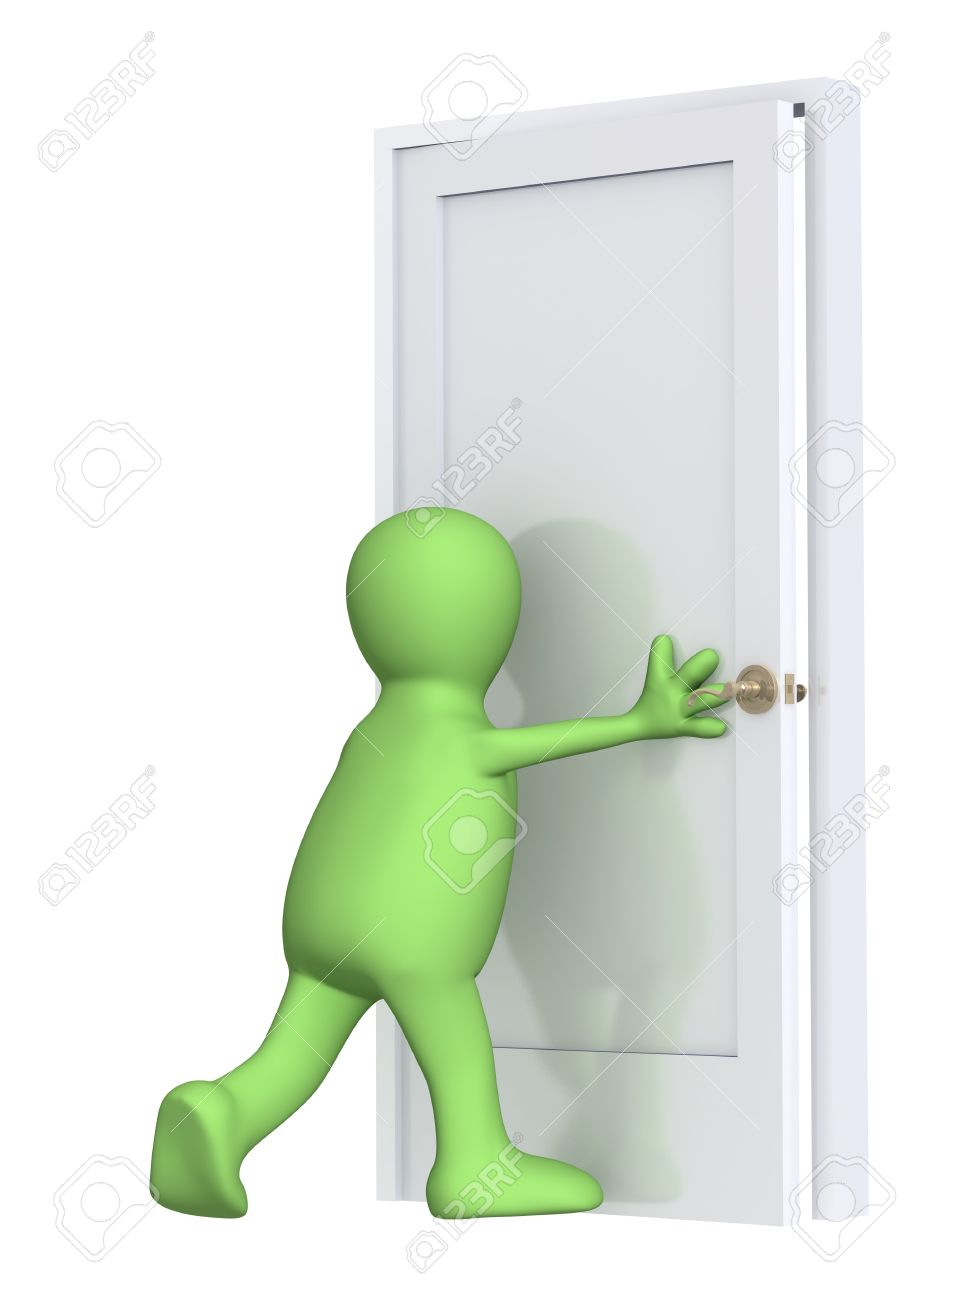 3d puppet closing a door. Over white Stock Photo - 4108109  sc 1 st  123RF.com & 3d Puppet Closing A Door. Over White Stock Photo Picture And ...